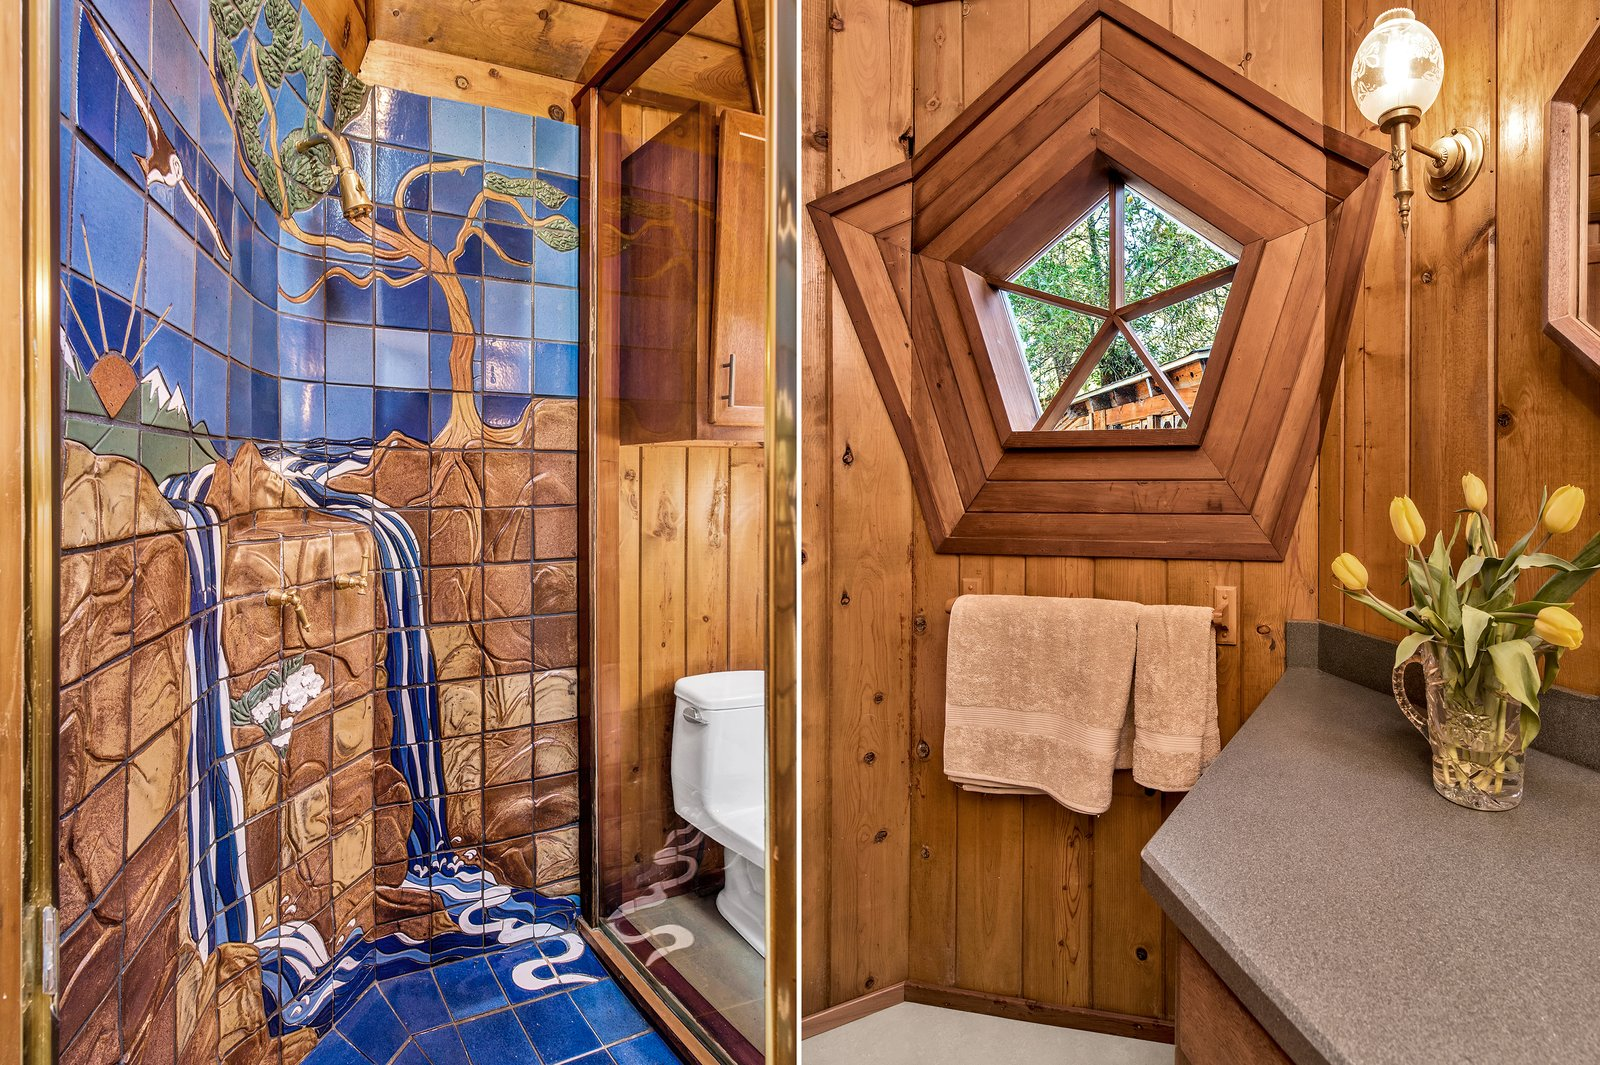 Bath Room, Wall Lighting, Mosaic Tile Wall, One Piece Toilet, Enclosed Shower, Laminate Counter, and Porcelain Tile Floor The custom tile work in the shower.  Photos from A Geodesic Getaway in Northern California Asks $475K